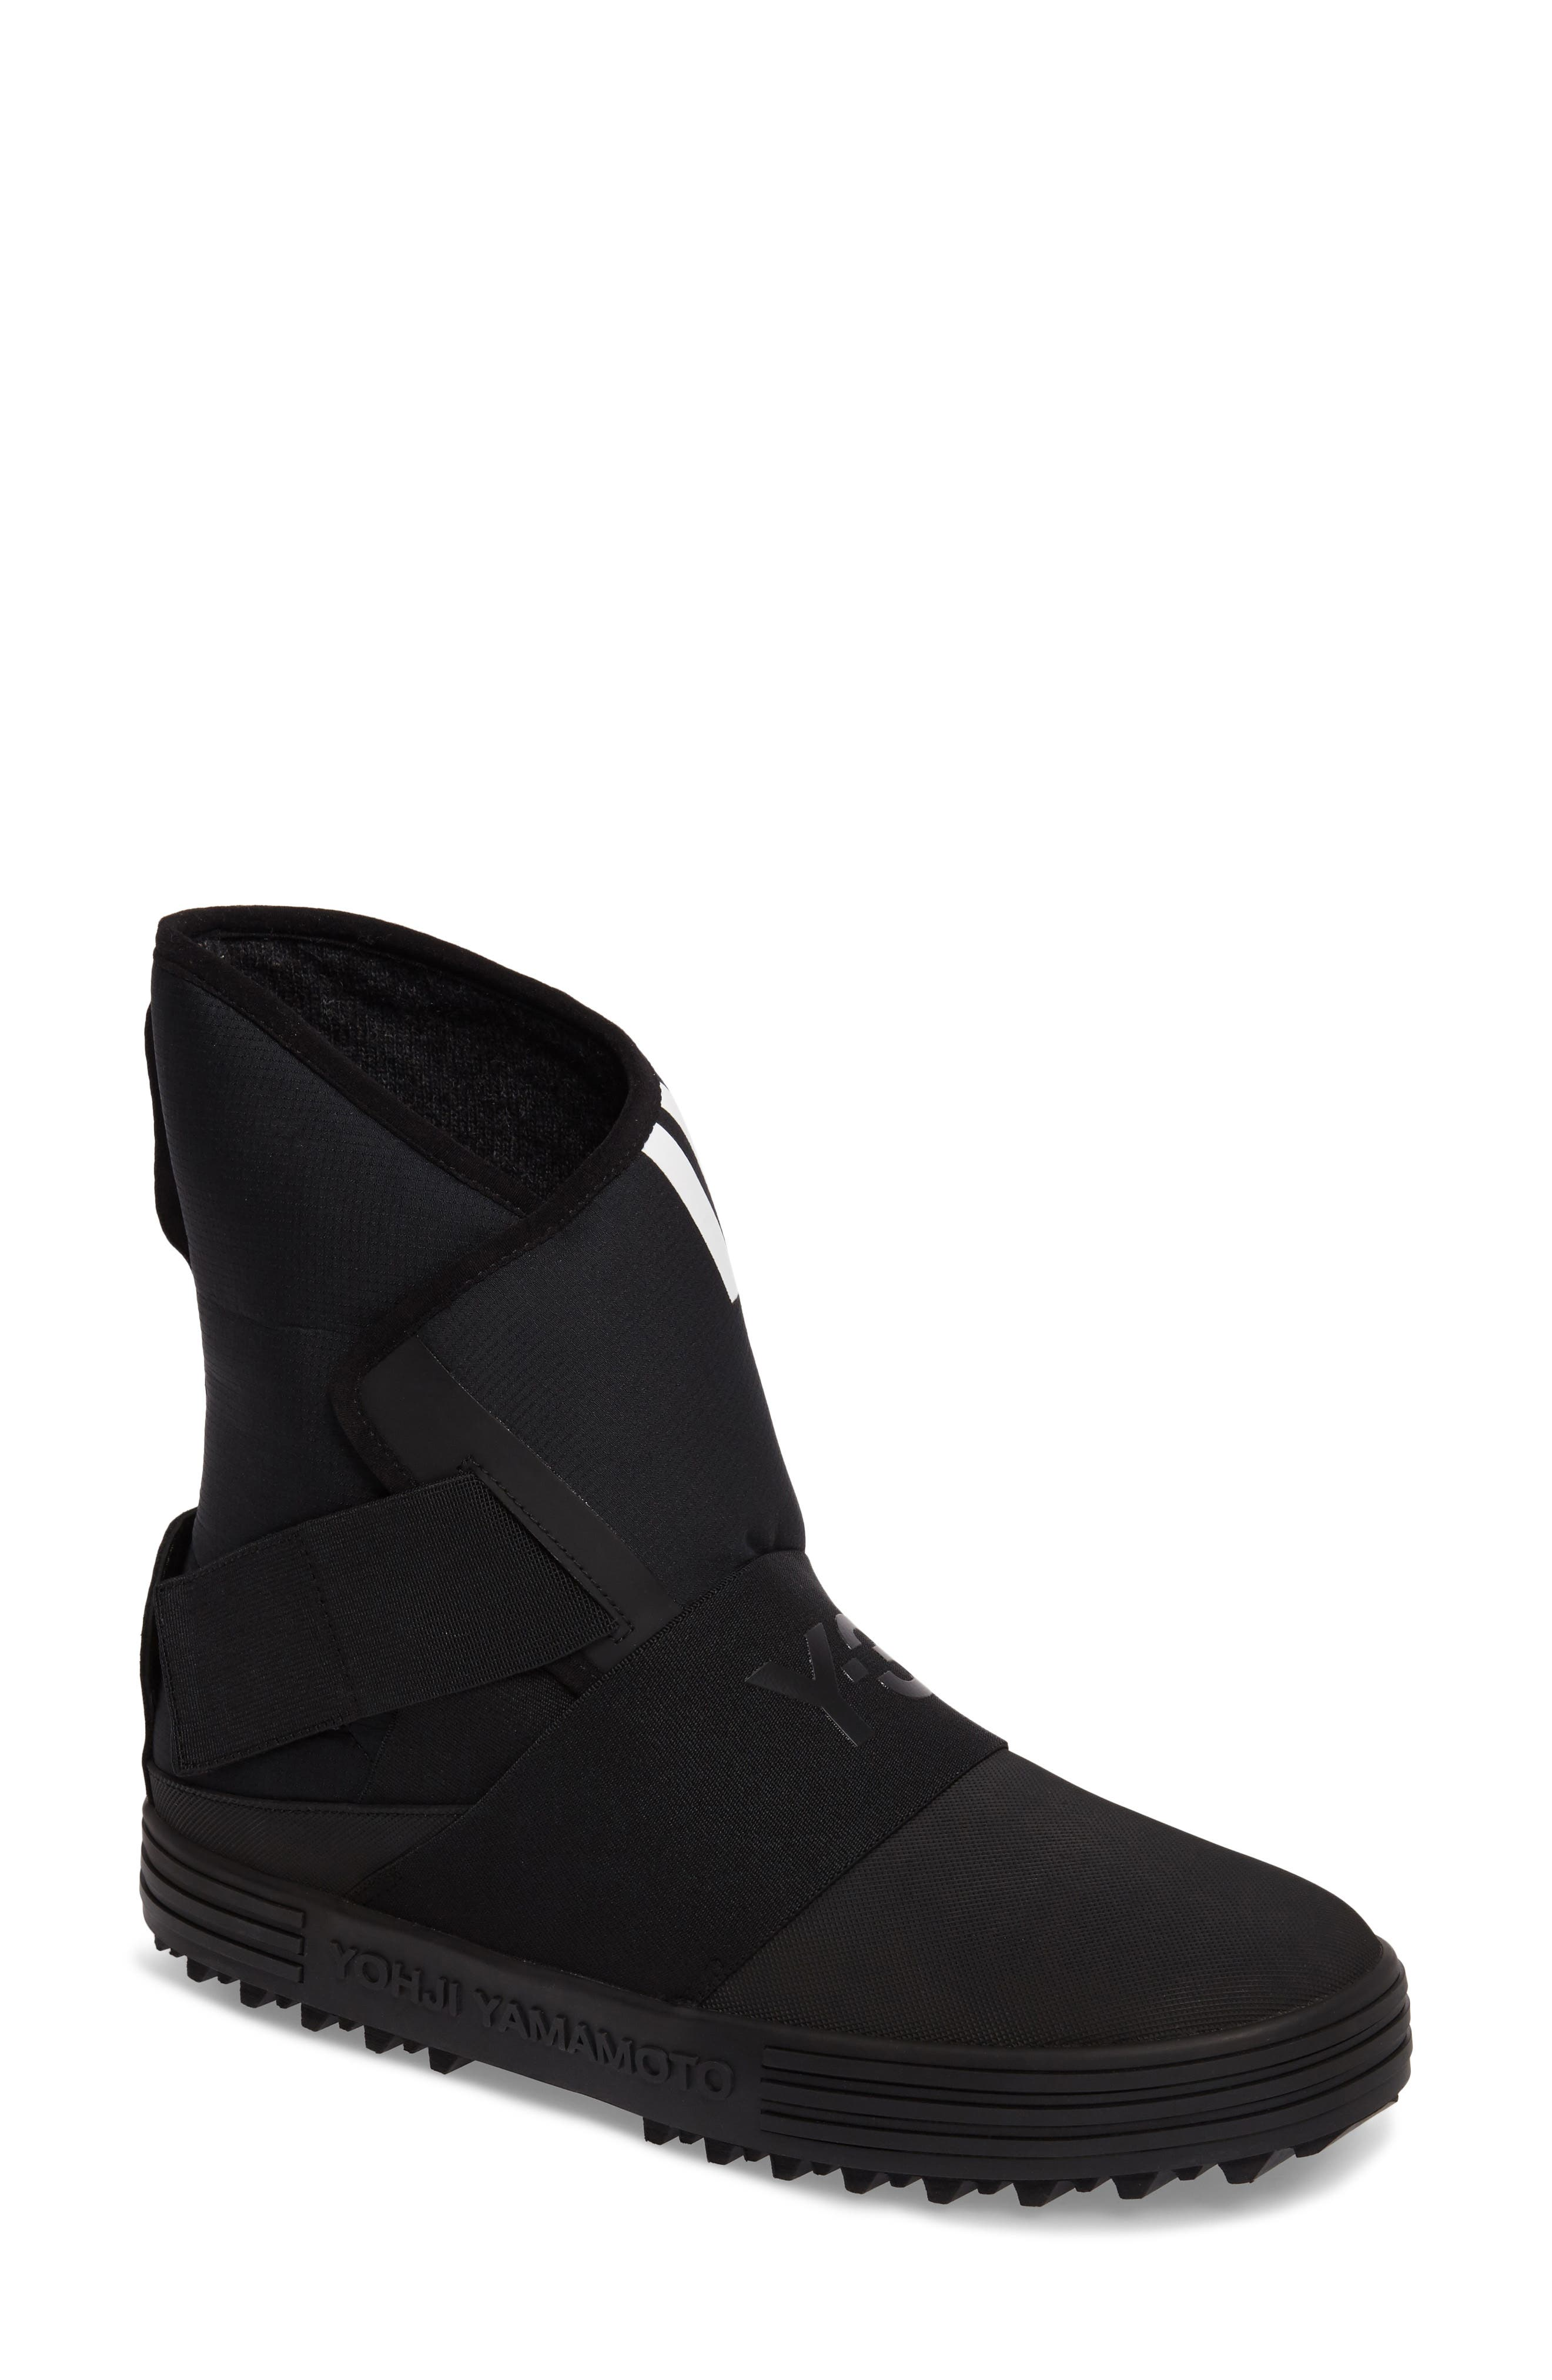 Alternate Image 1 Selected - Y-3 Sno Foxing High Top Sneaker (Women)